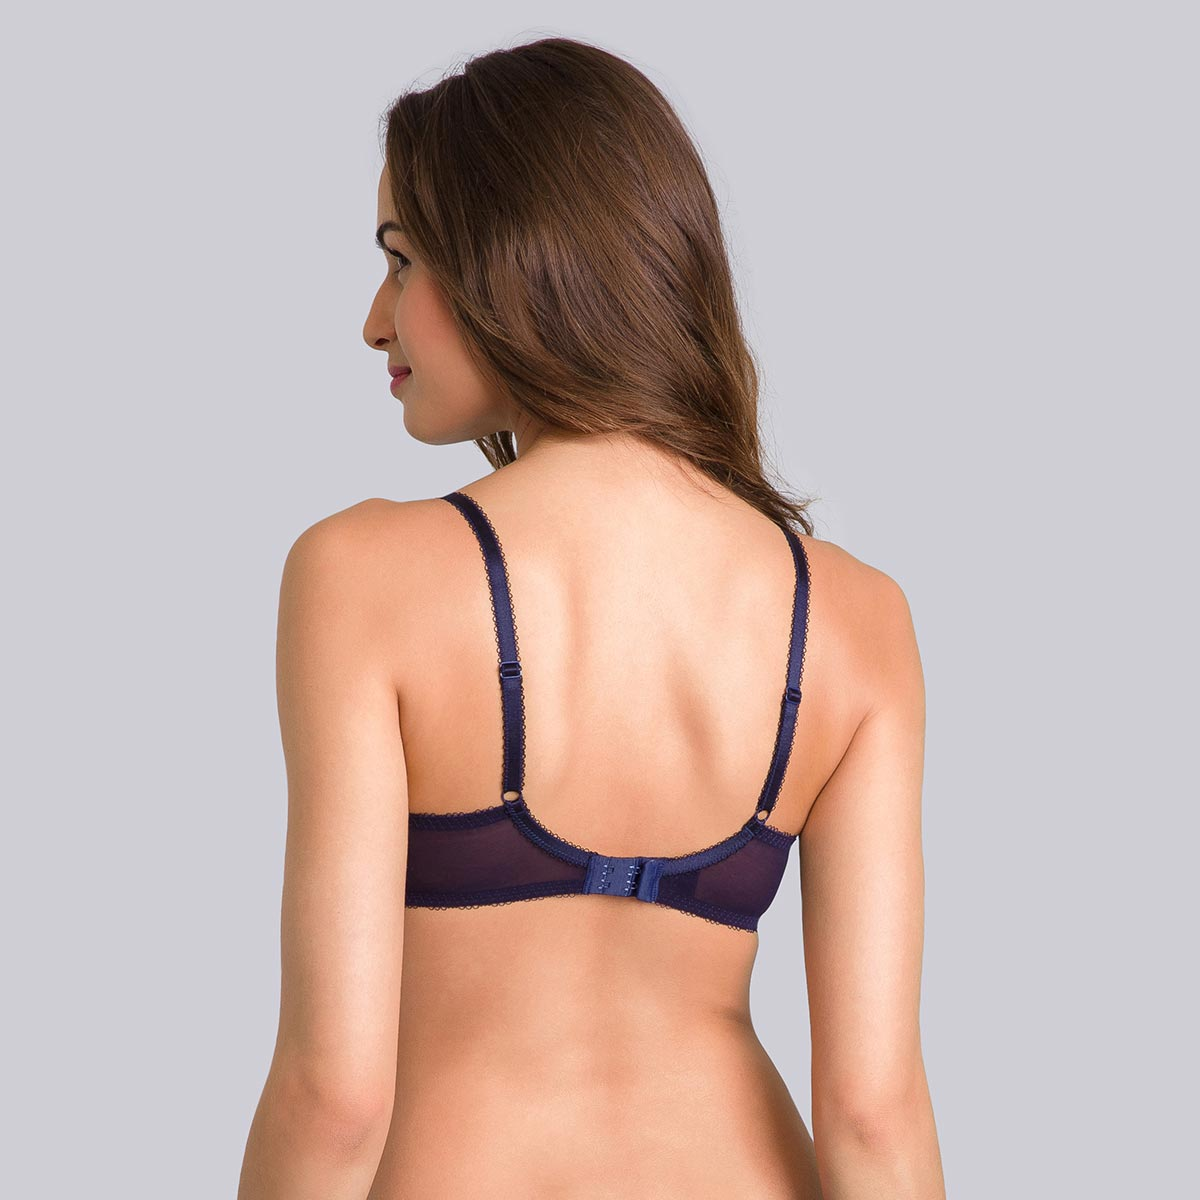 Blue balconette bra with coral print - Daily Elegance-PLAYTEX